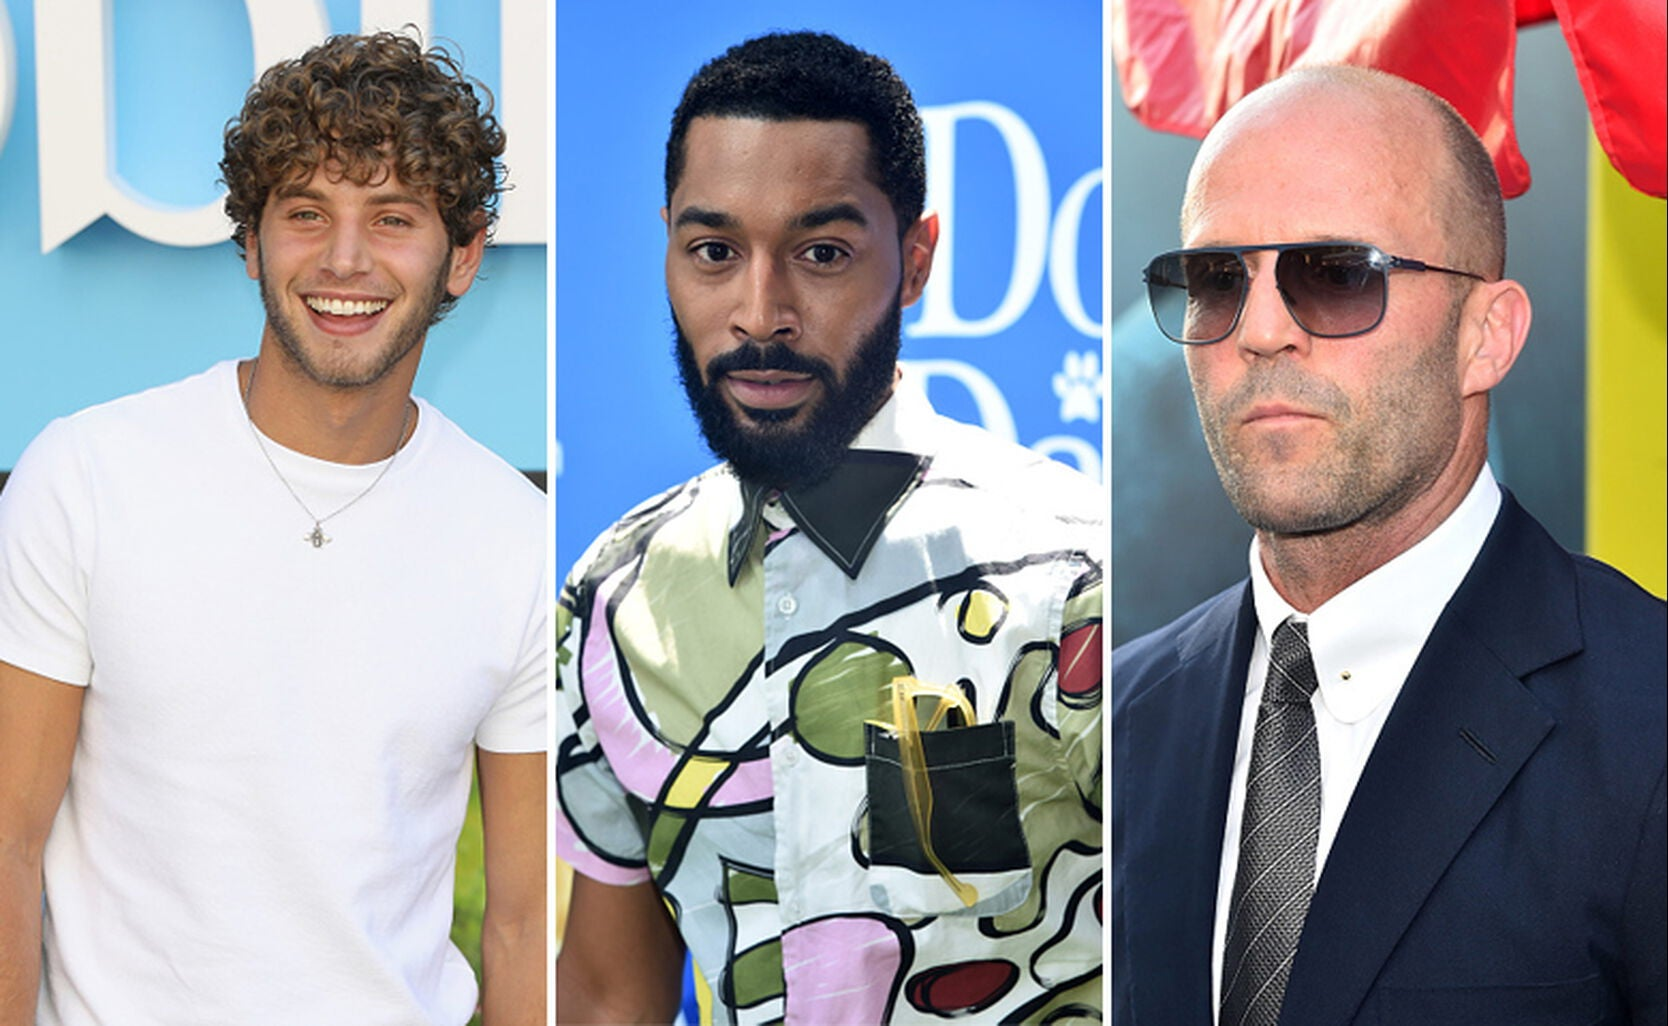 Eyal Booker, Tone Bell and Jason Statham